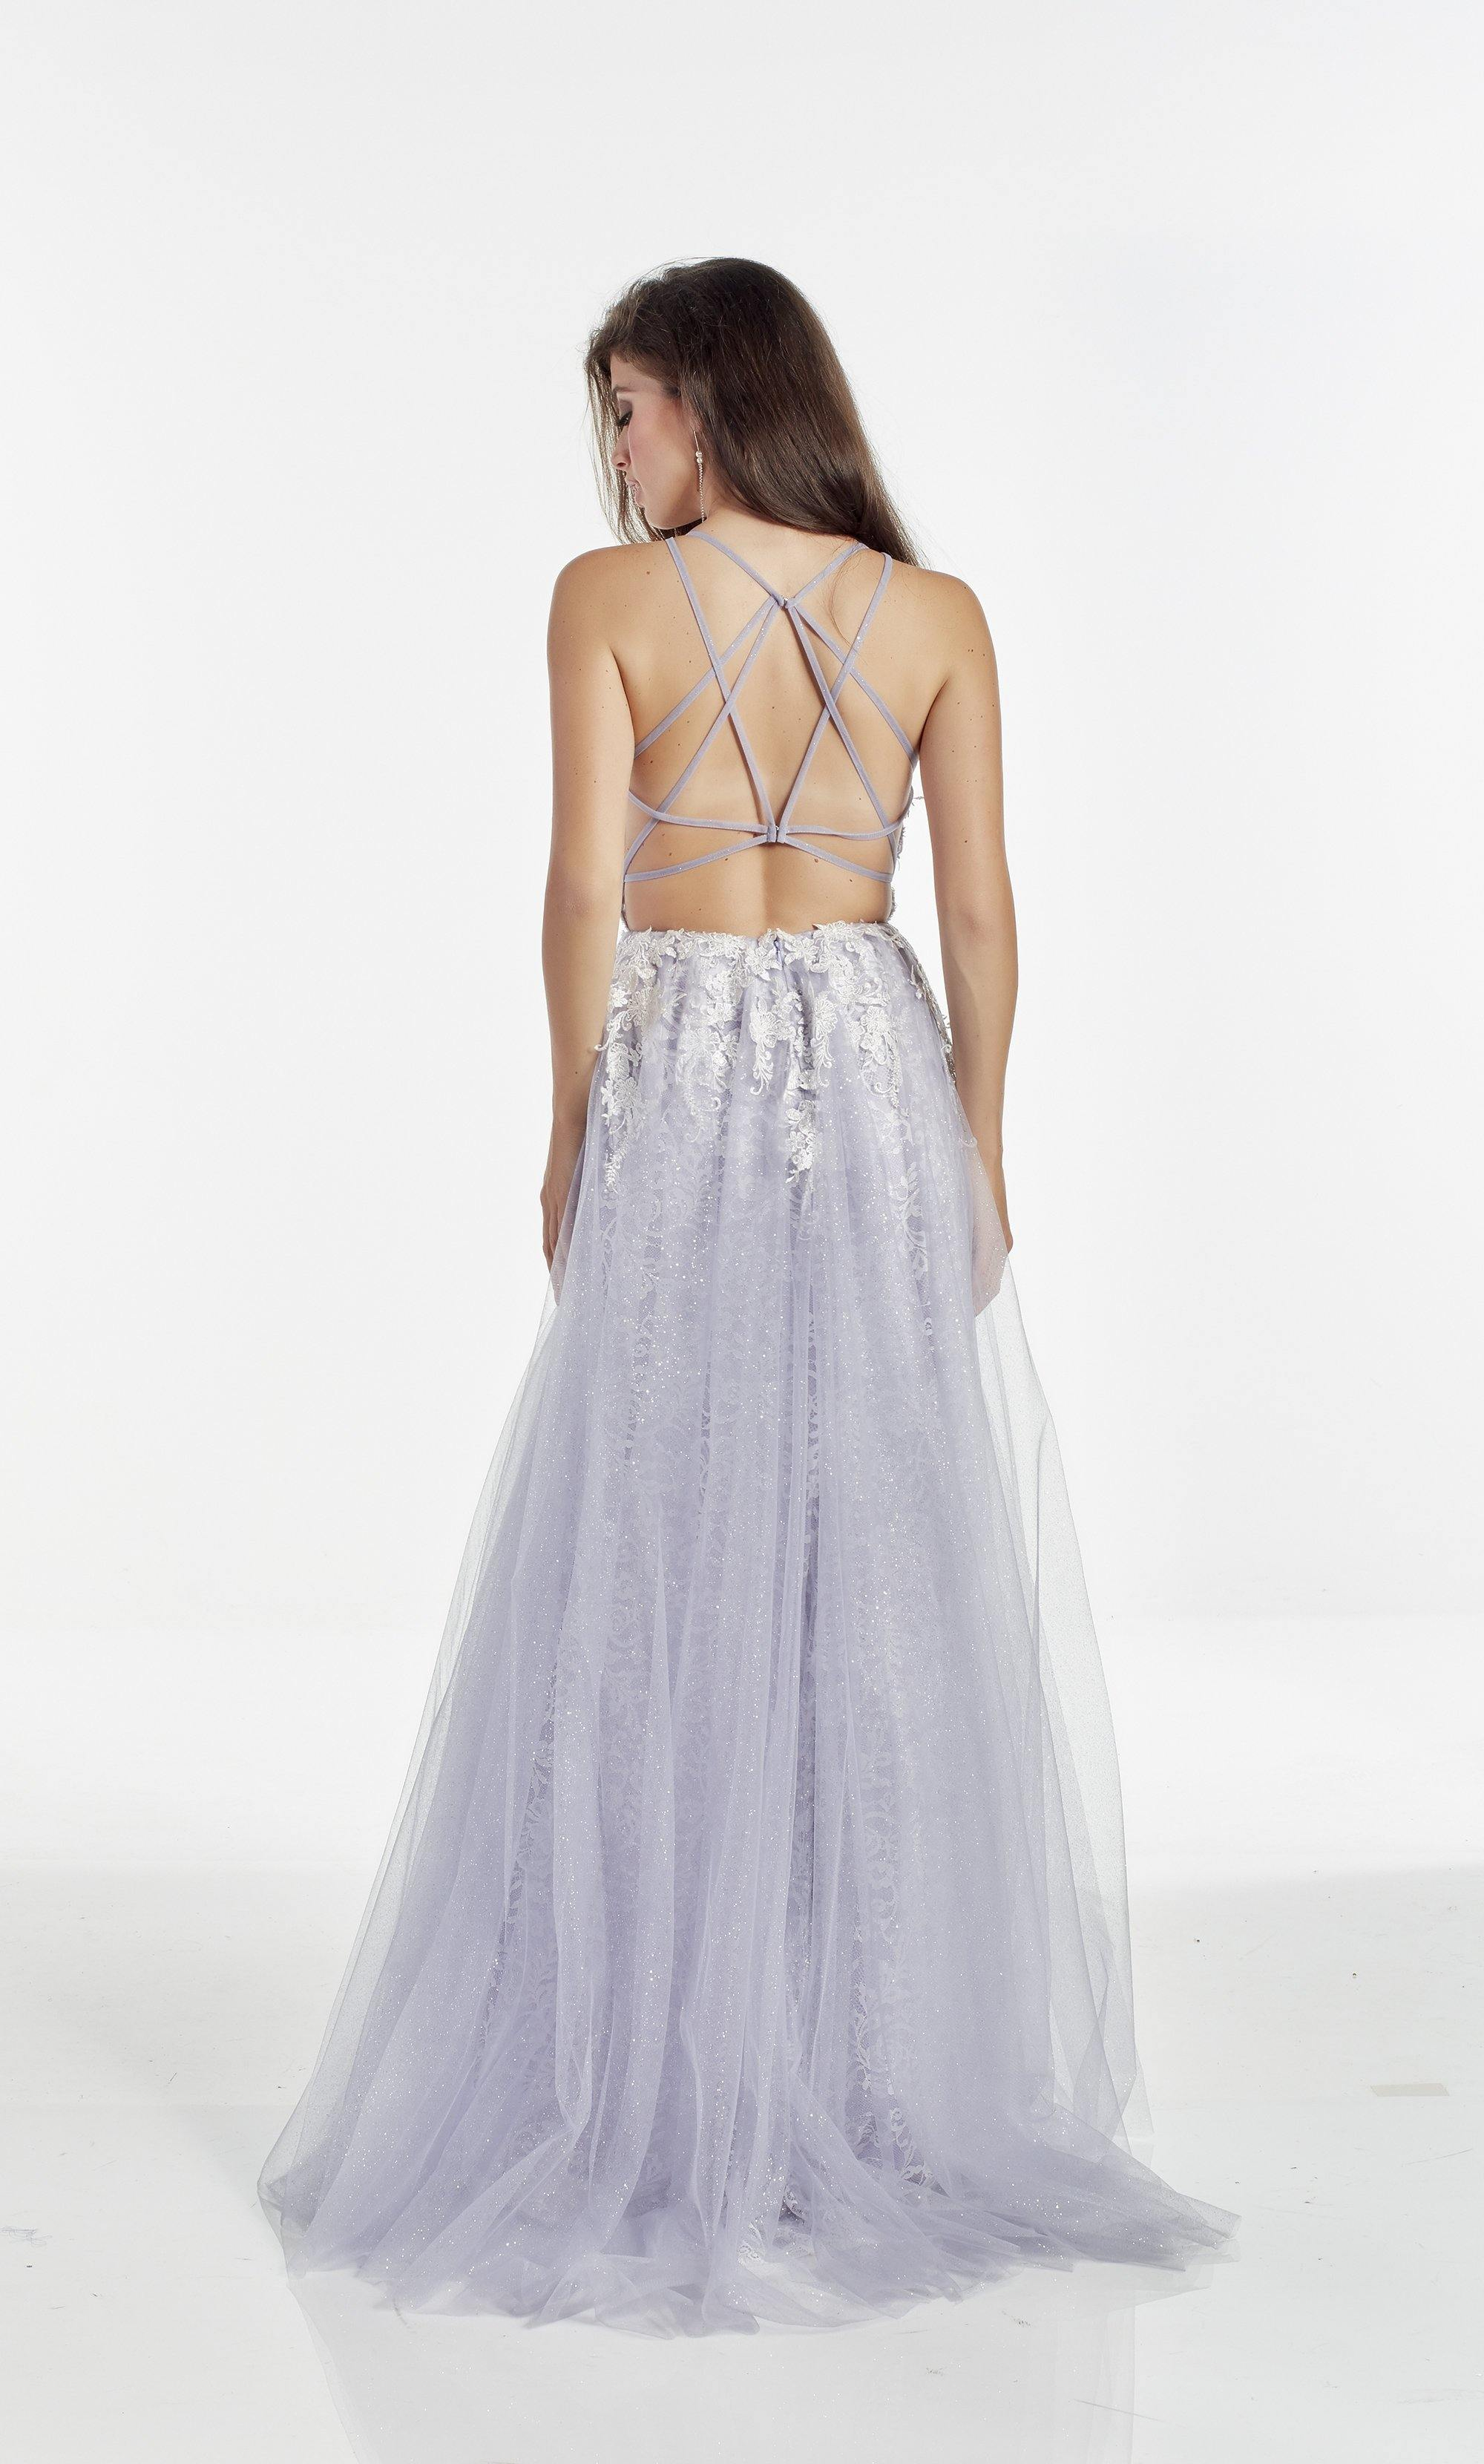 Glitter tulle- lace prom dress with a plunging neckline and high slit in a two tone White-Blue